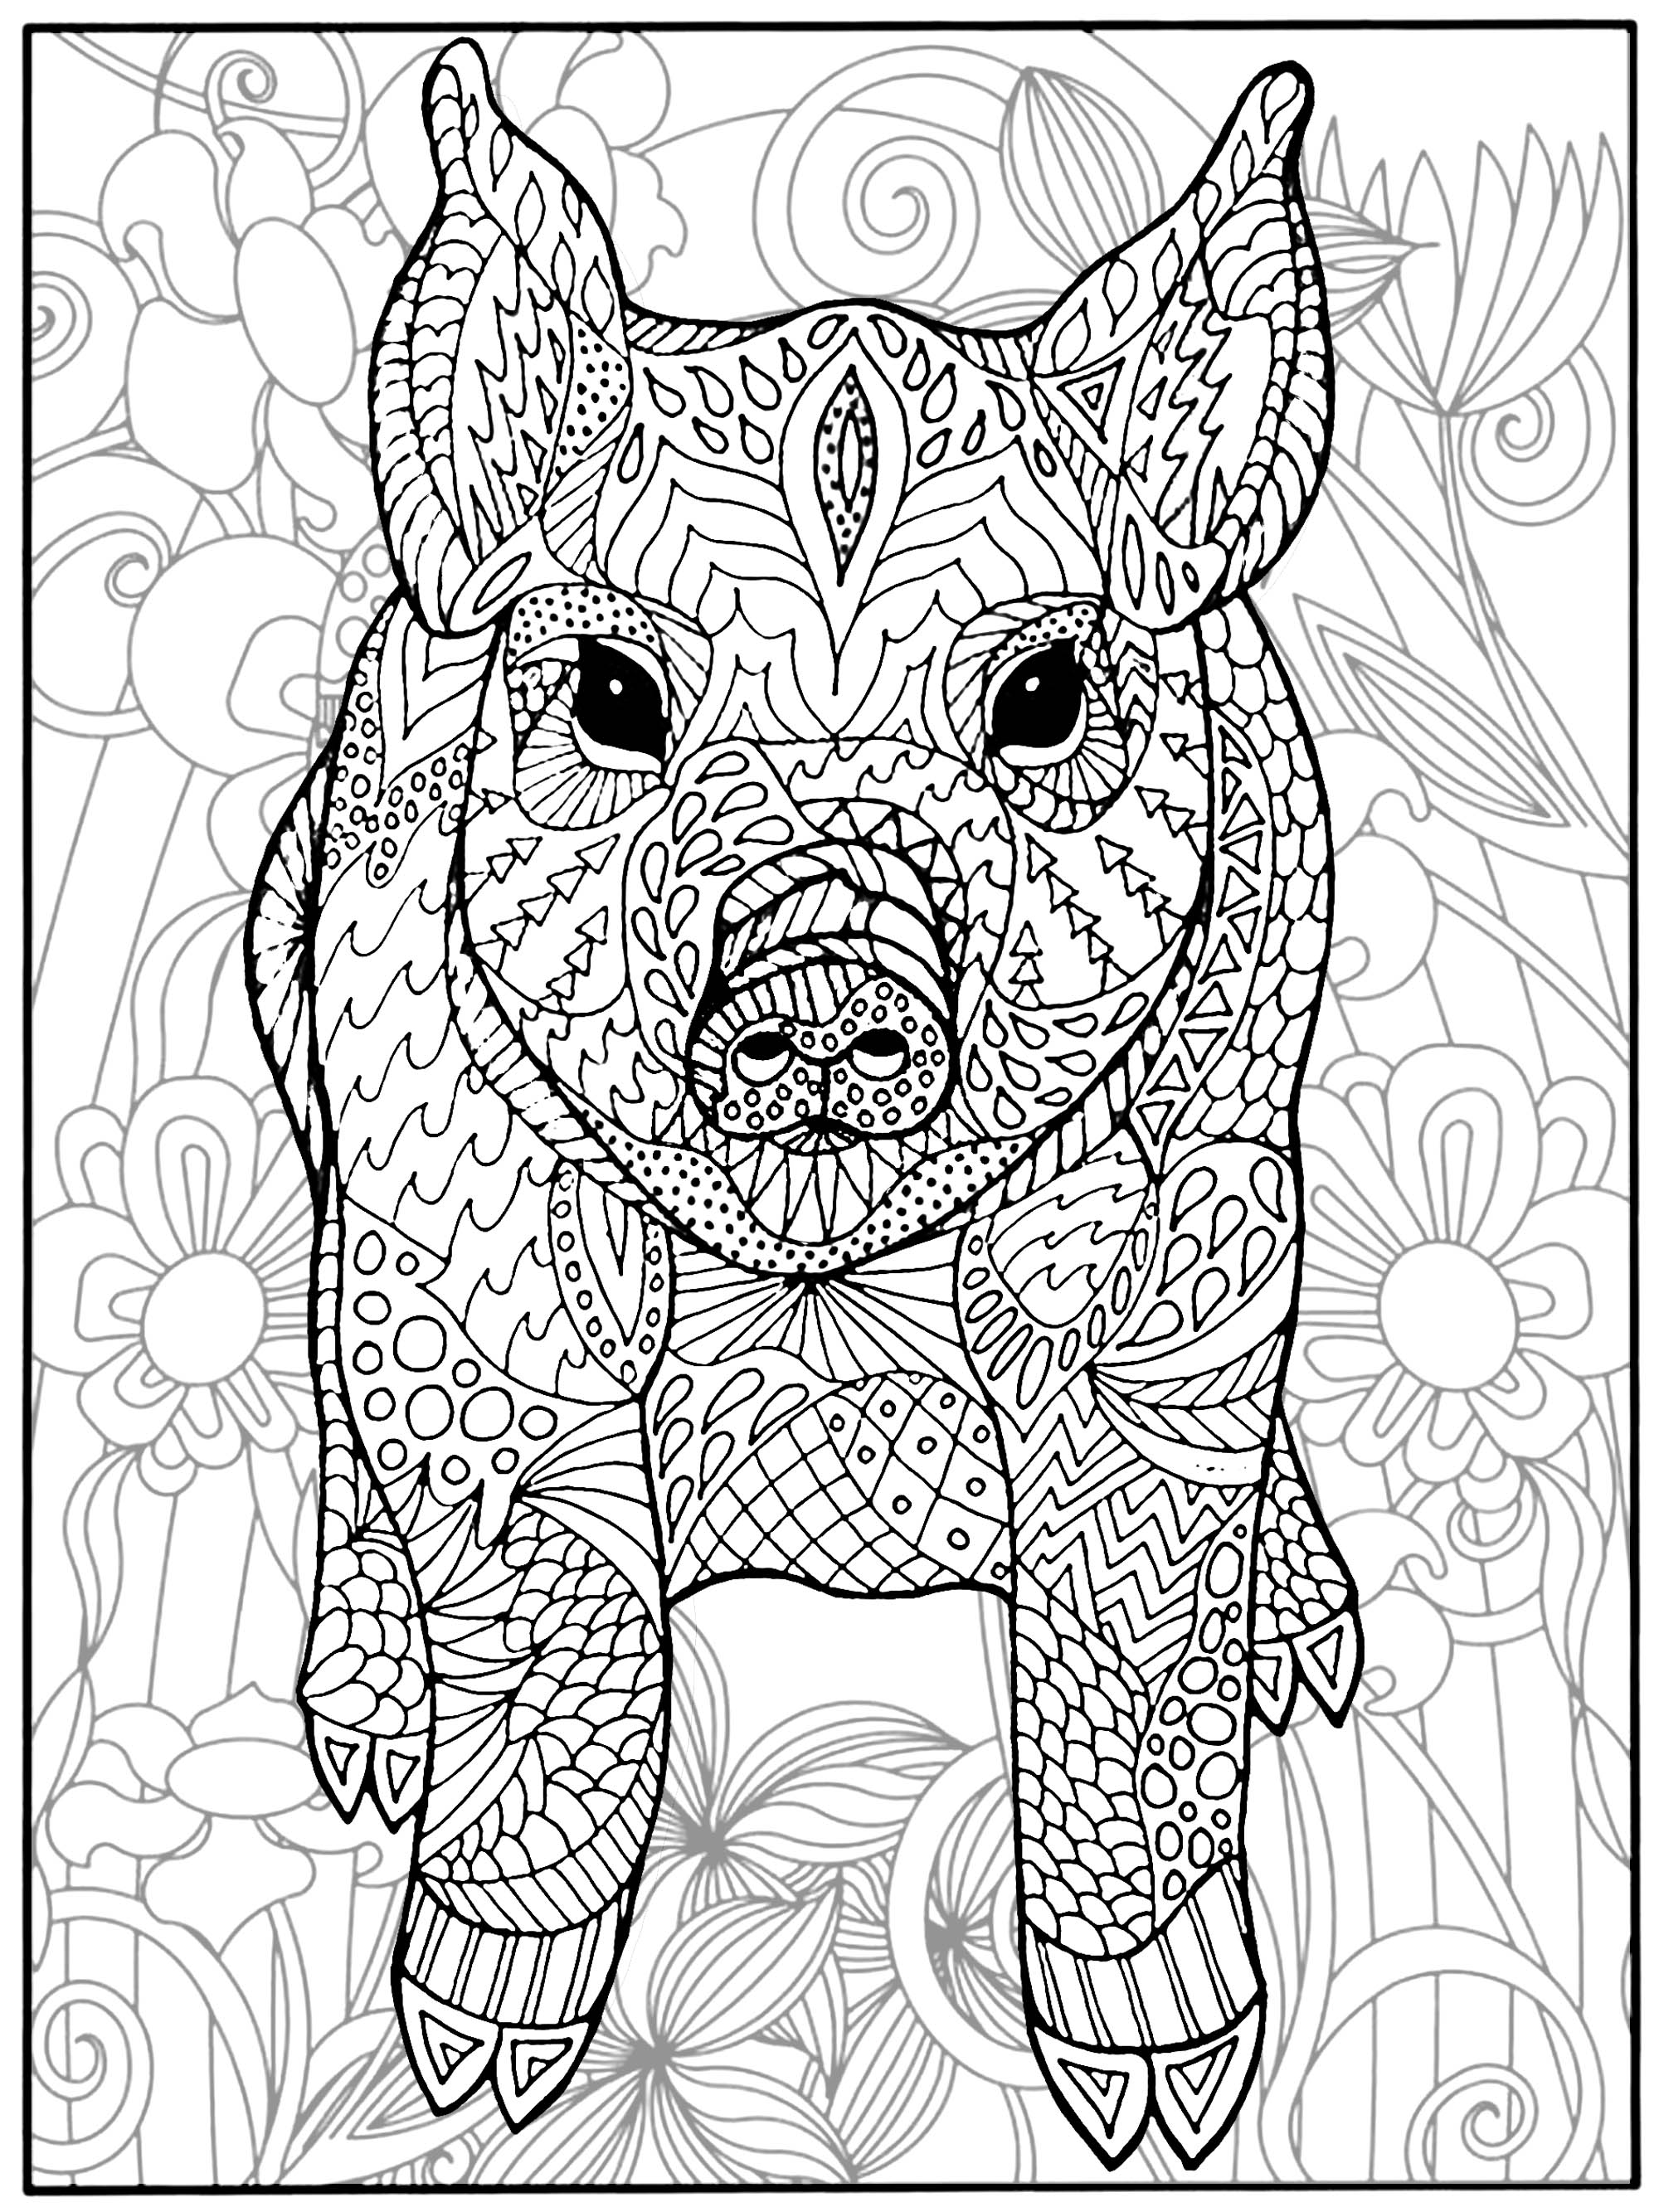 coloring page of pig cute piglet pig in a teacup coloring page rubber stamp pig page coloring of